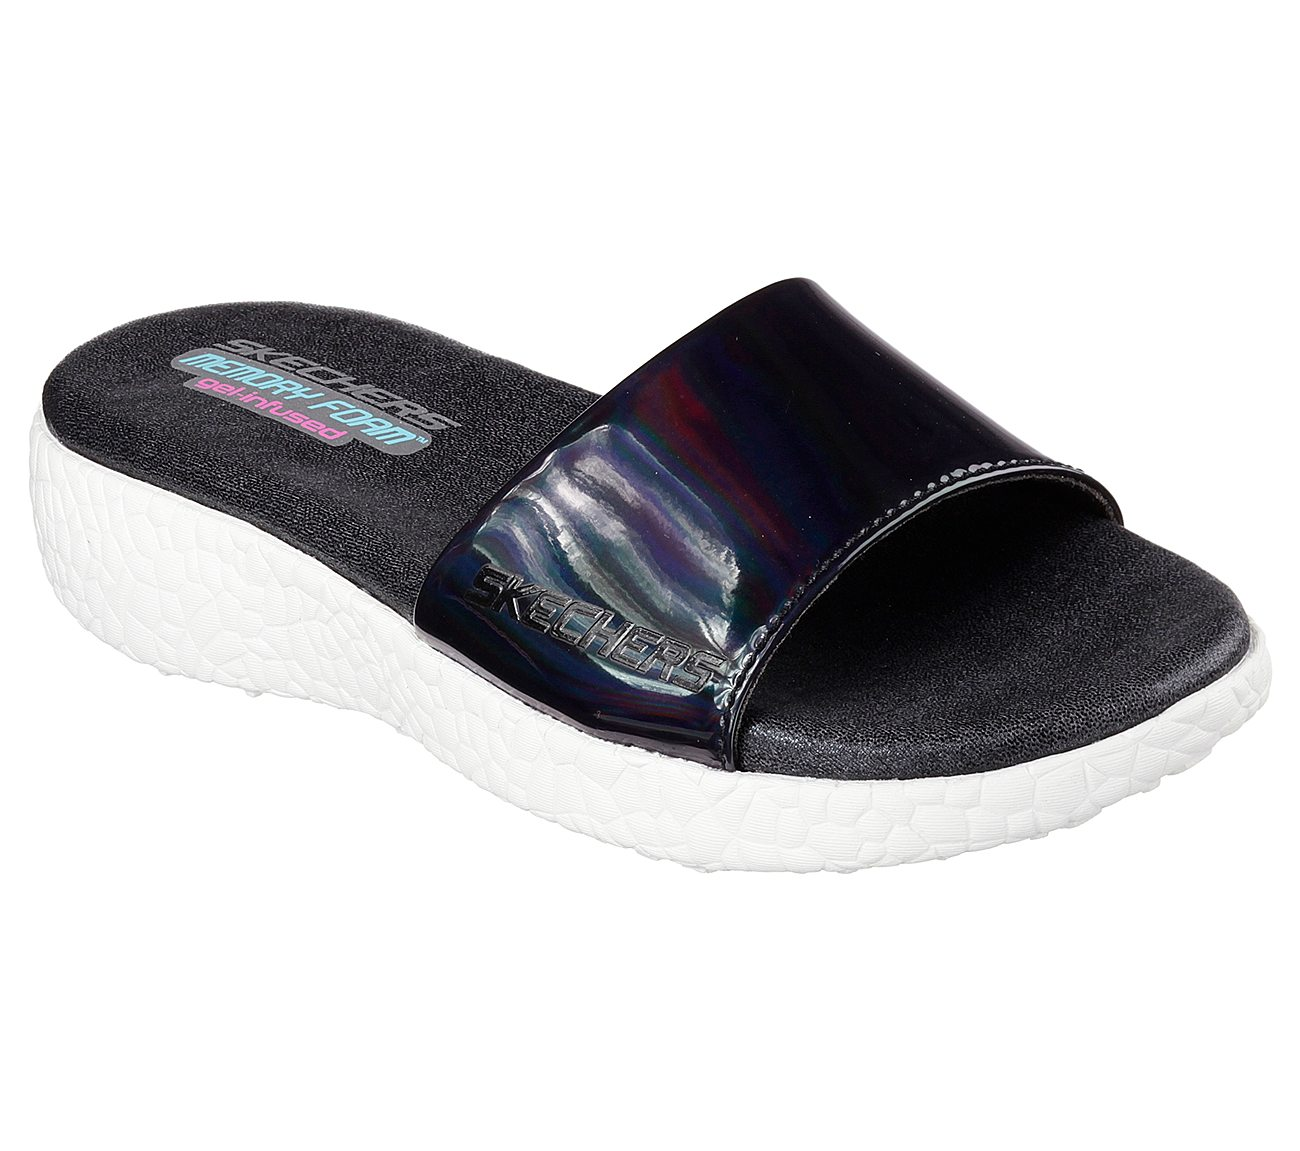 01db93f94bef Buy SKECHERS Burst - Introspect Comfort Sandals Shoes only  50.00